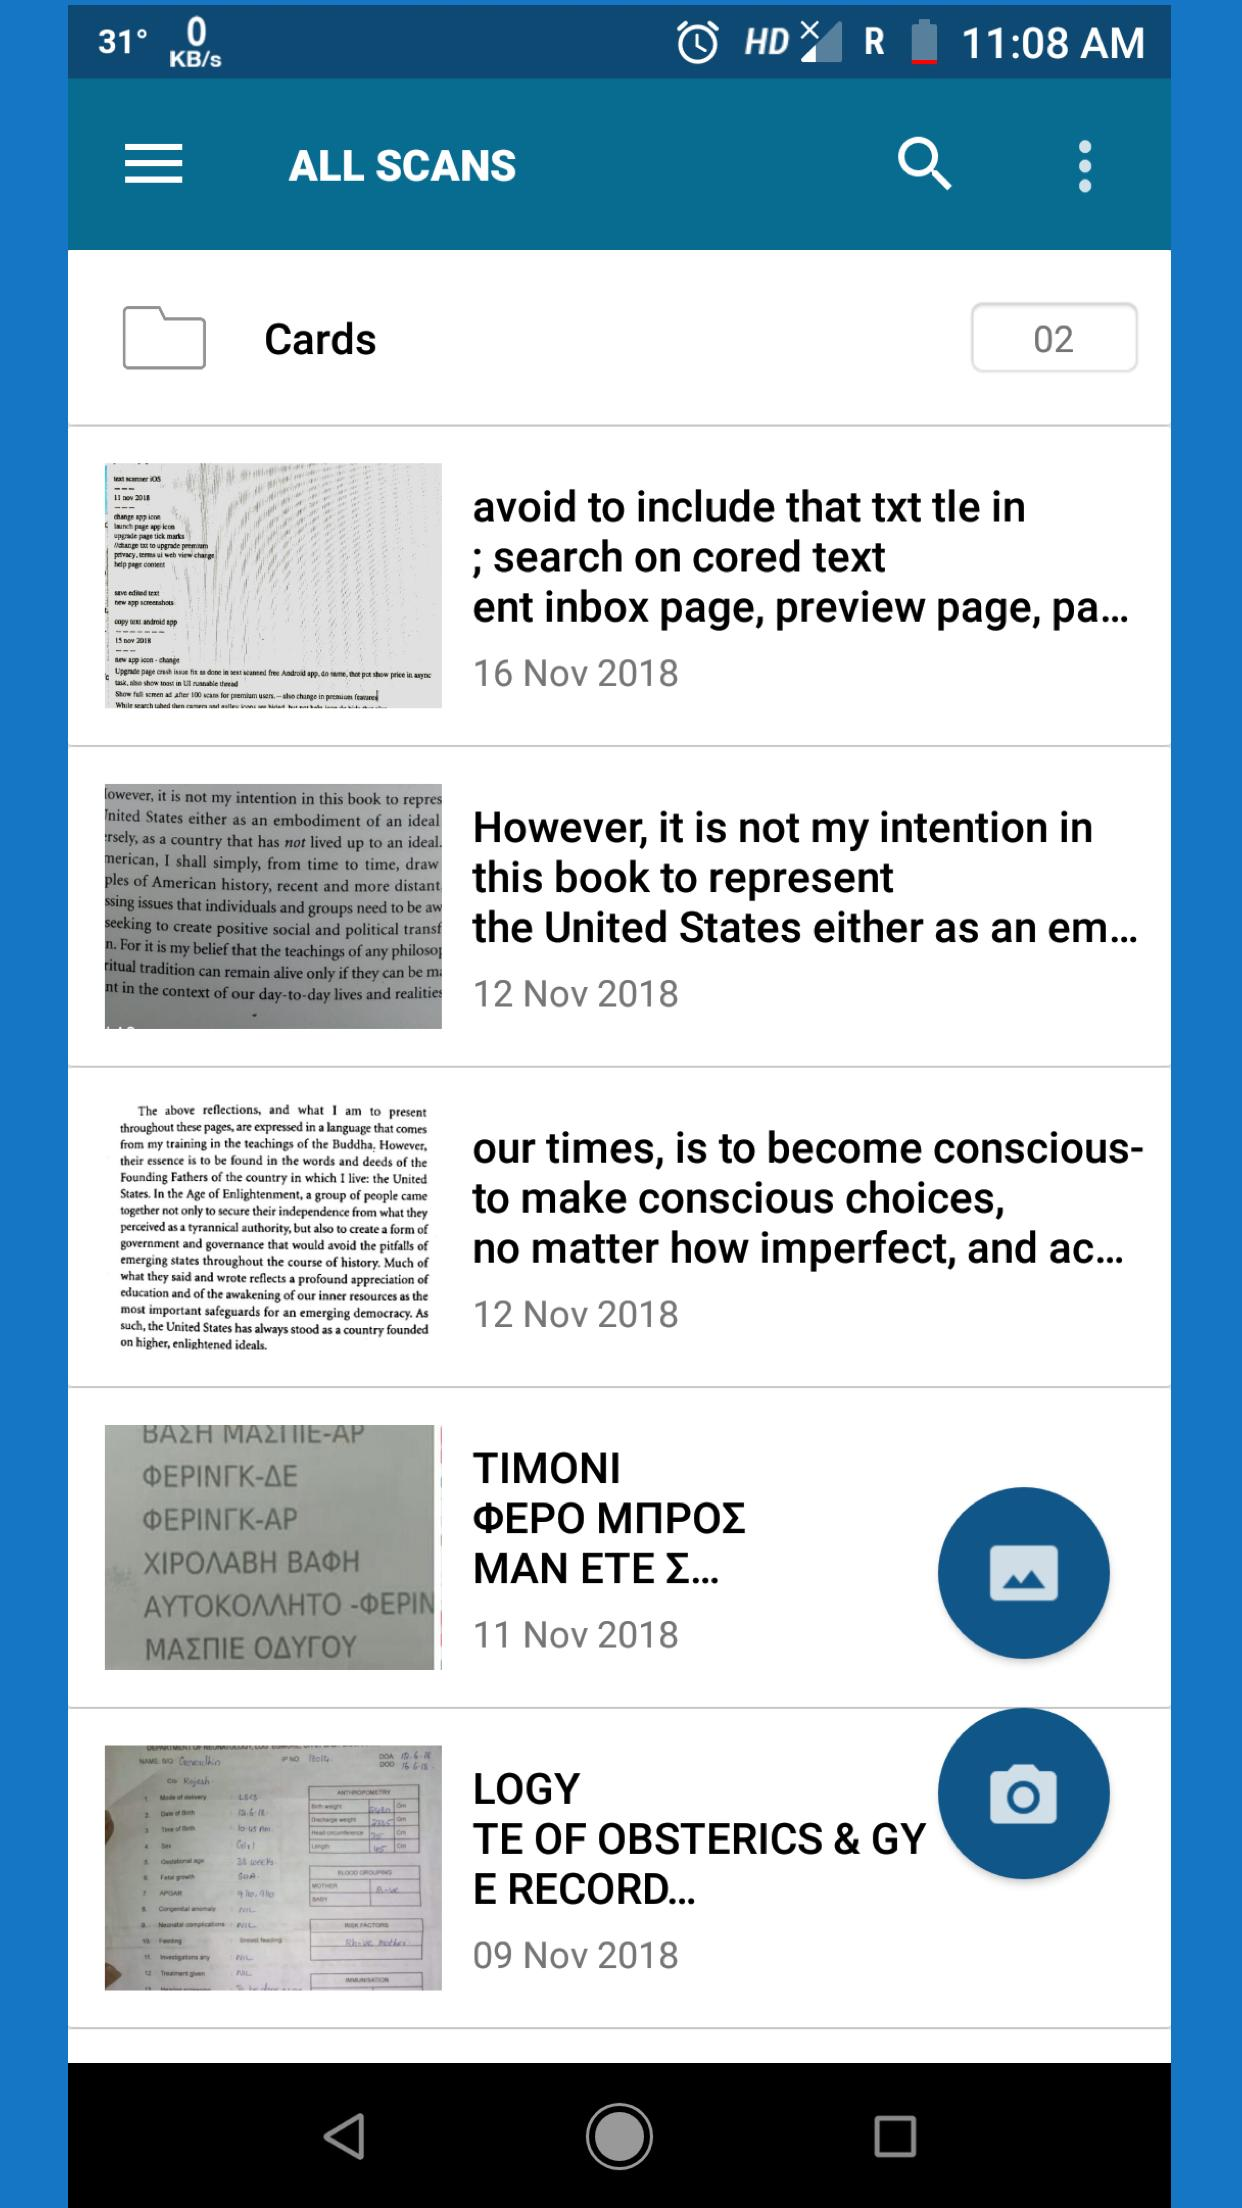 OCR Text Scanner : Convert an image to text for Android